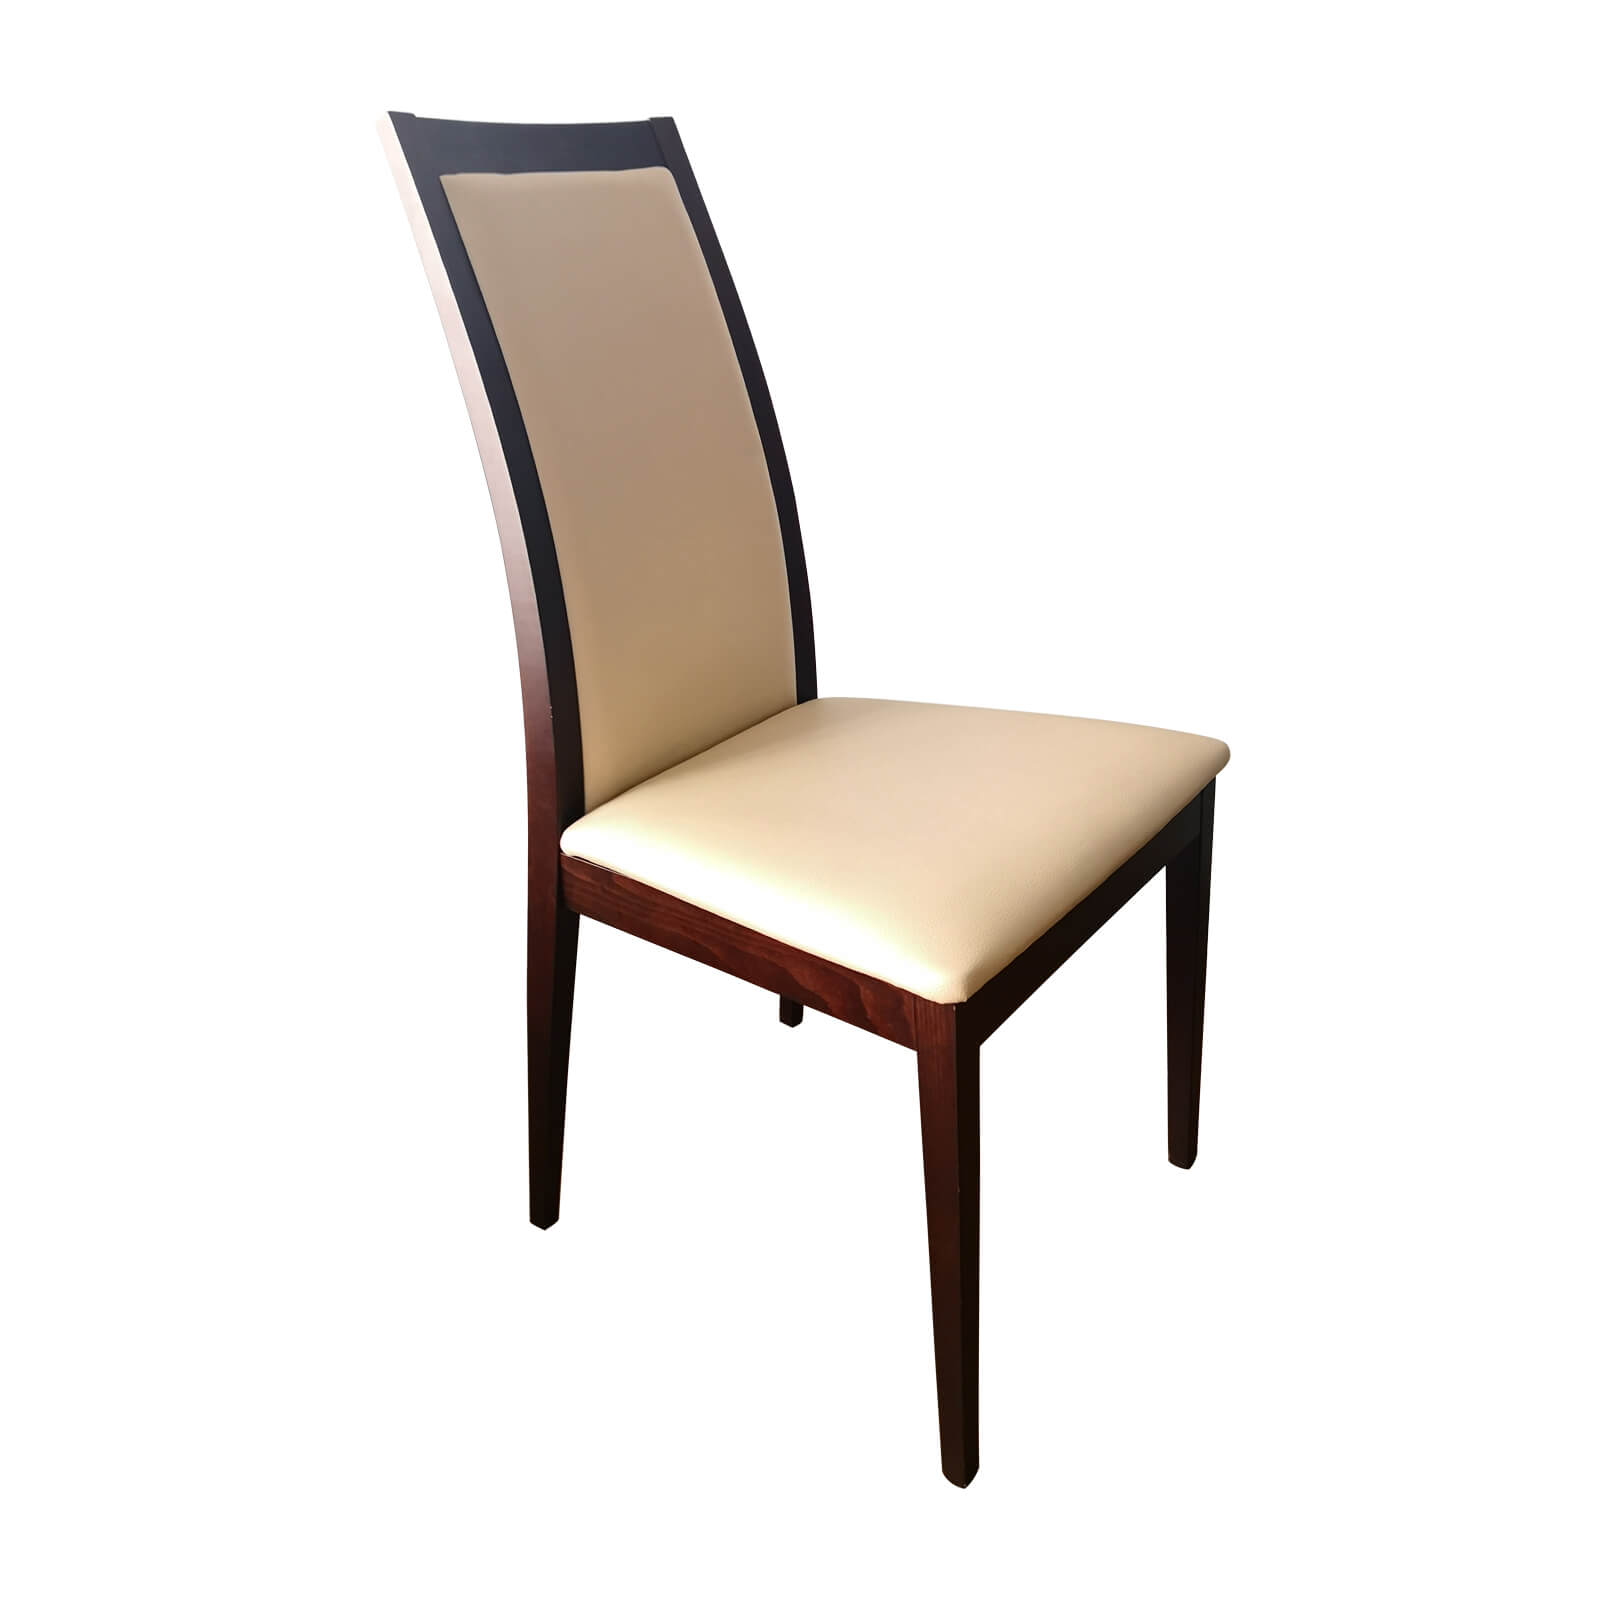 Two Design Lovers Italian 5 piece dining set leather chair